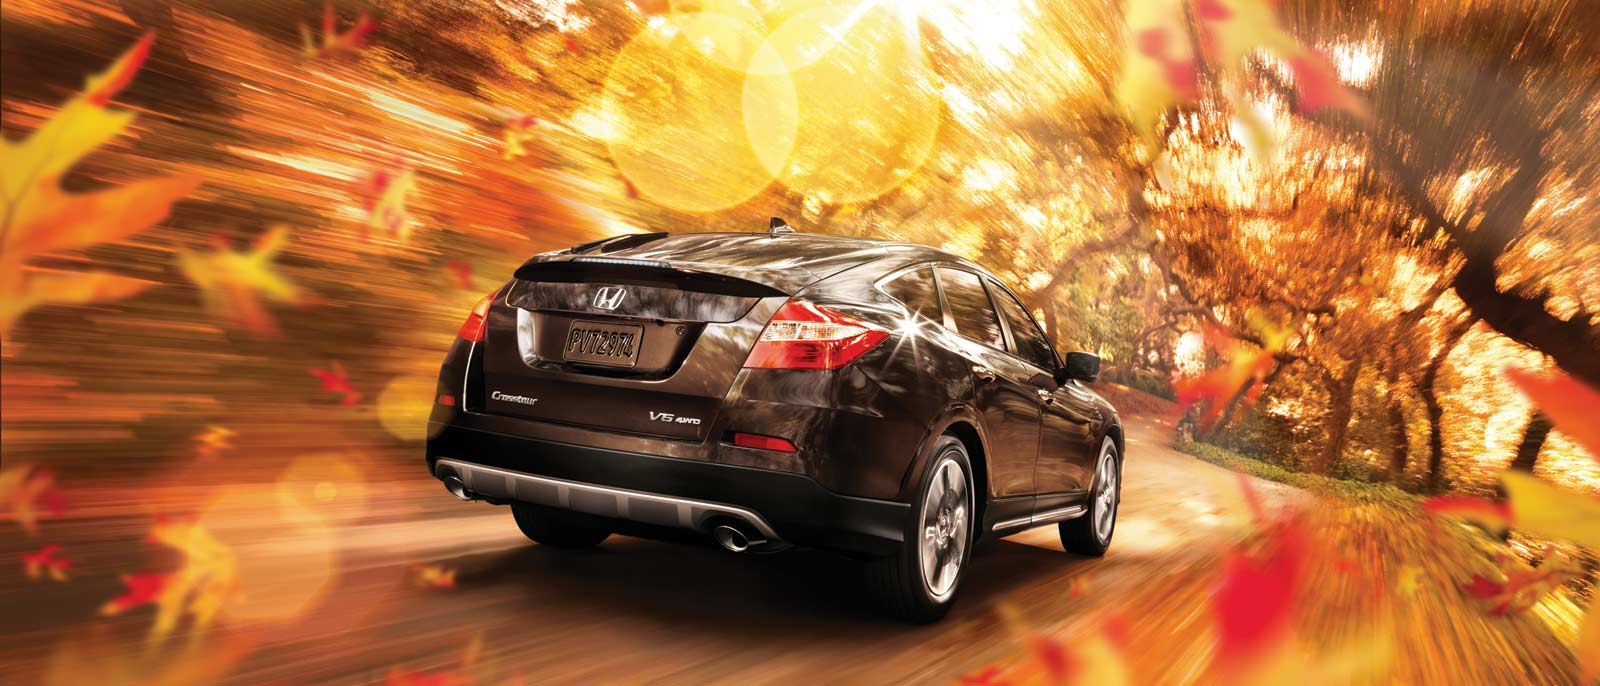 2015 Honda Crosstour in a pleasant forest setting